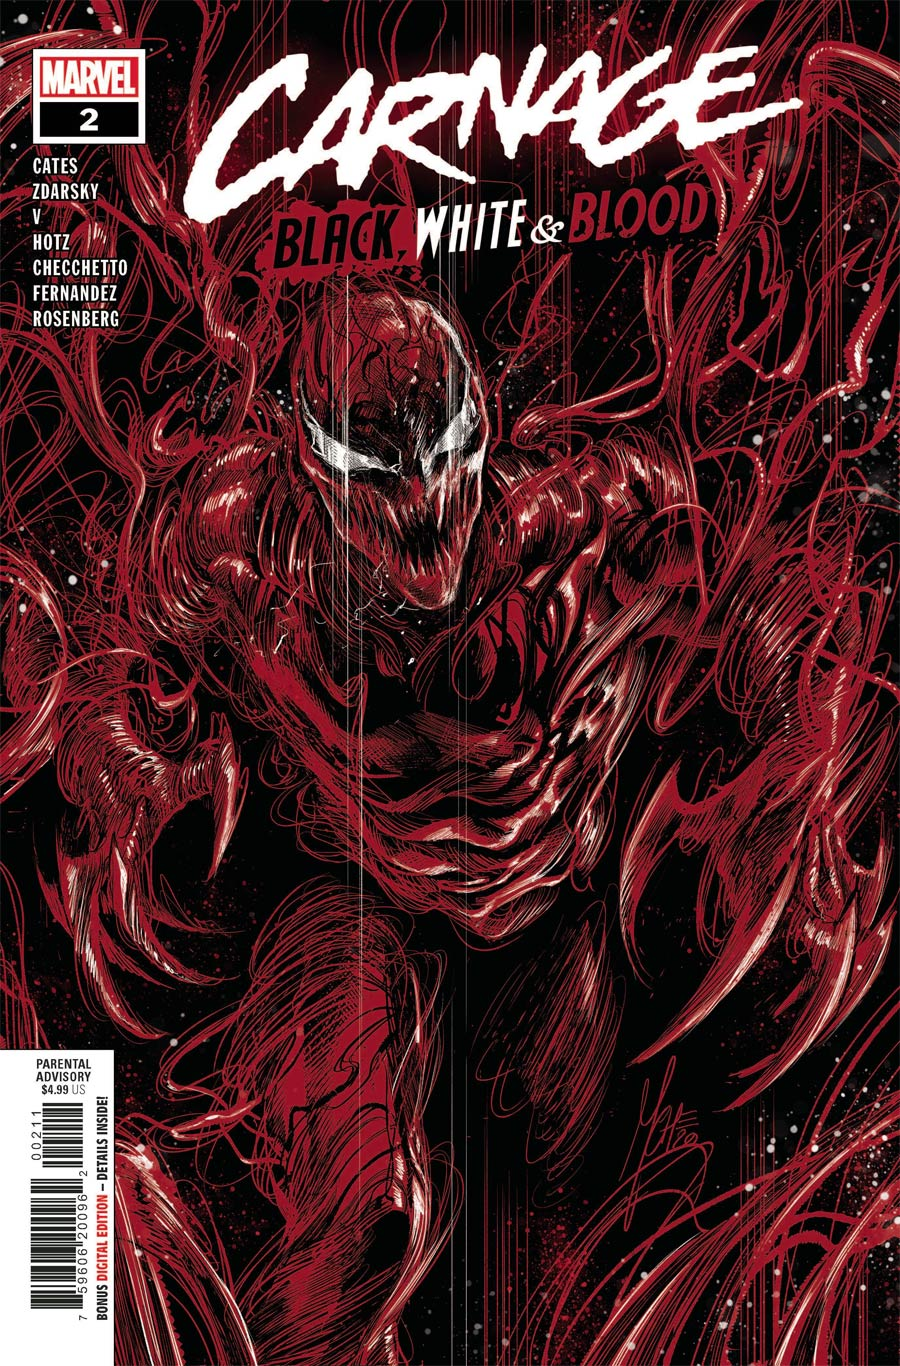 Carnage Black White & Blood #2 Cover A Regular Marco Checchetto Cover